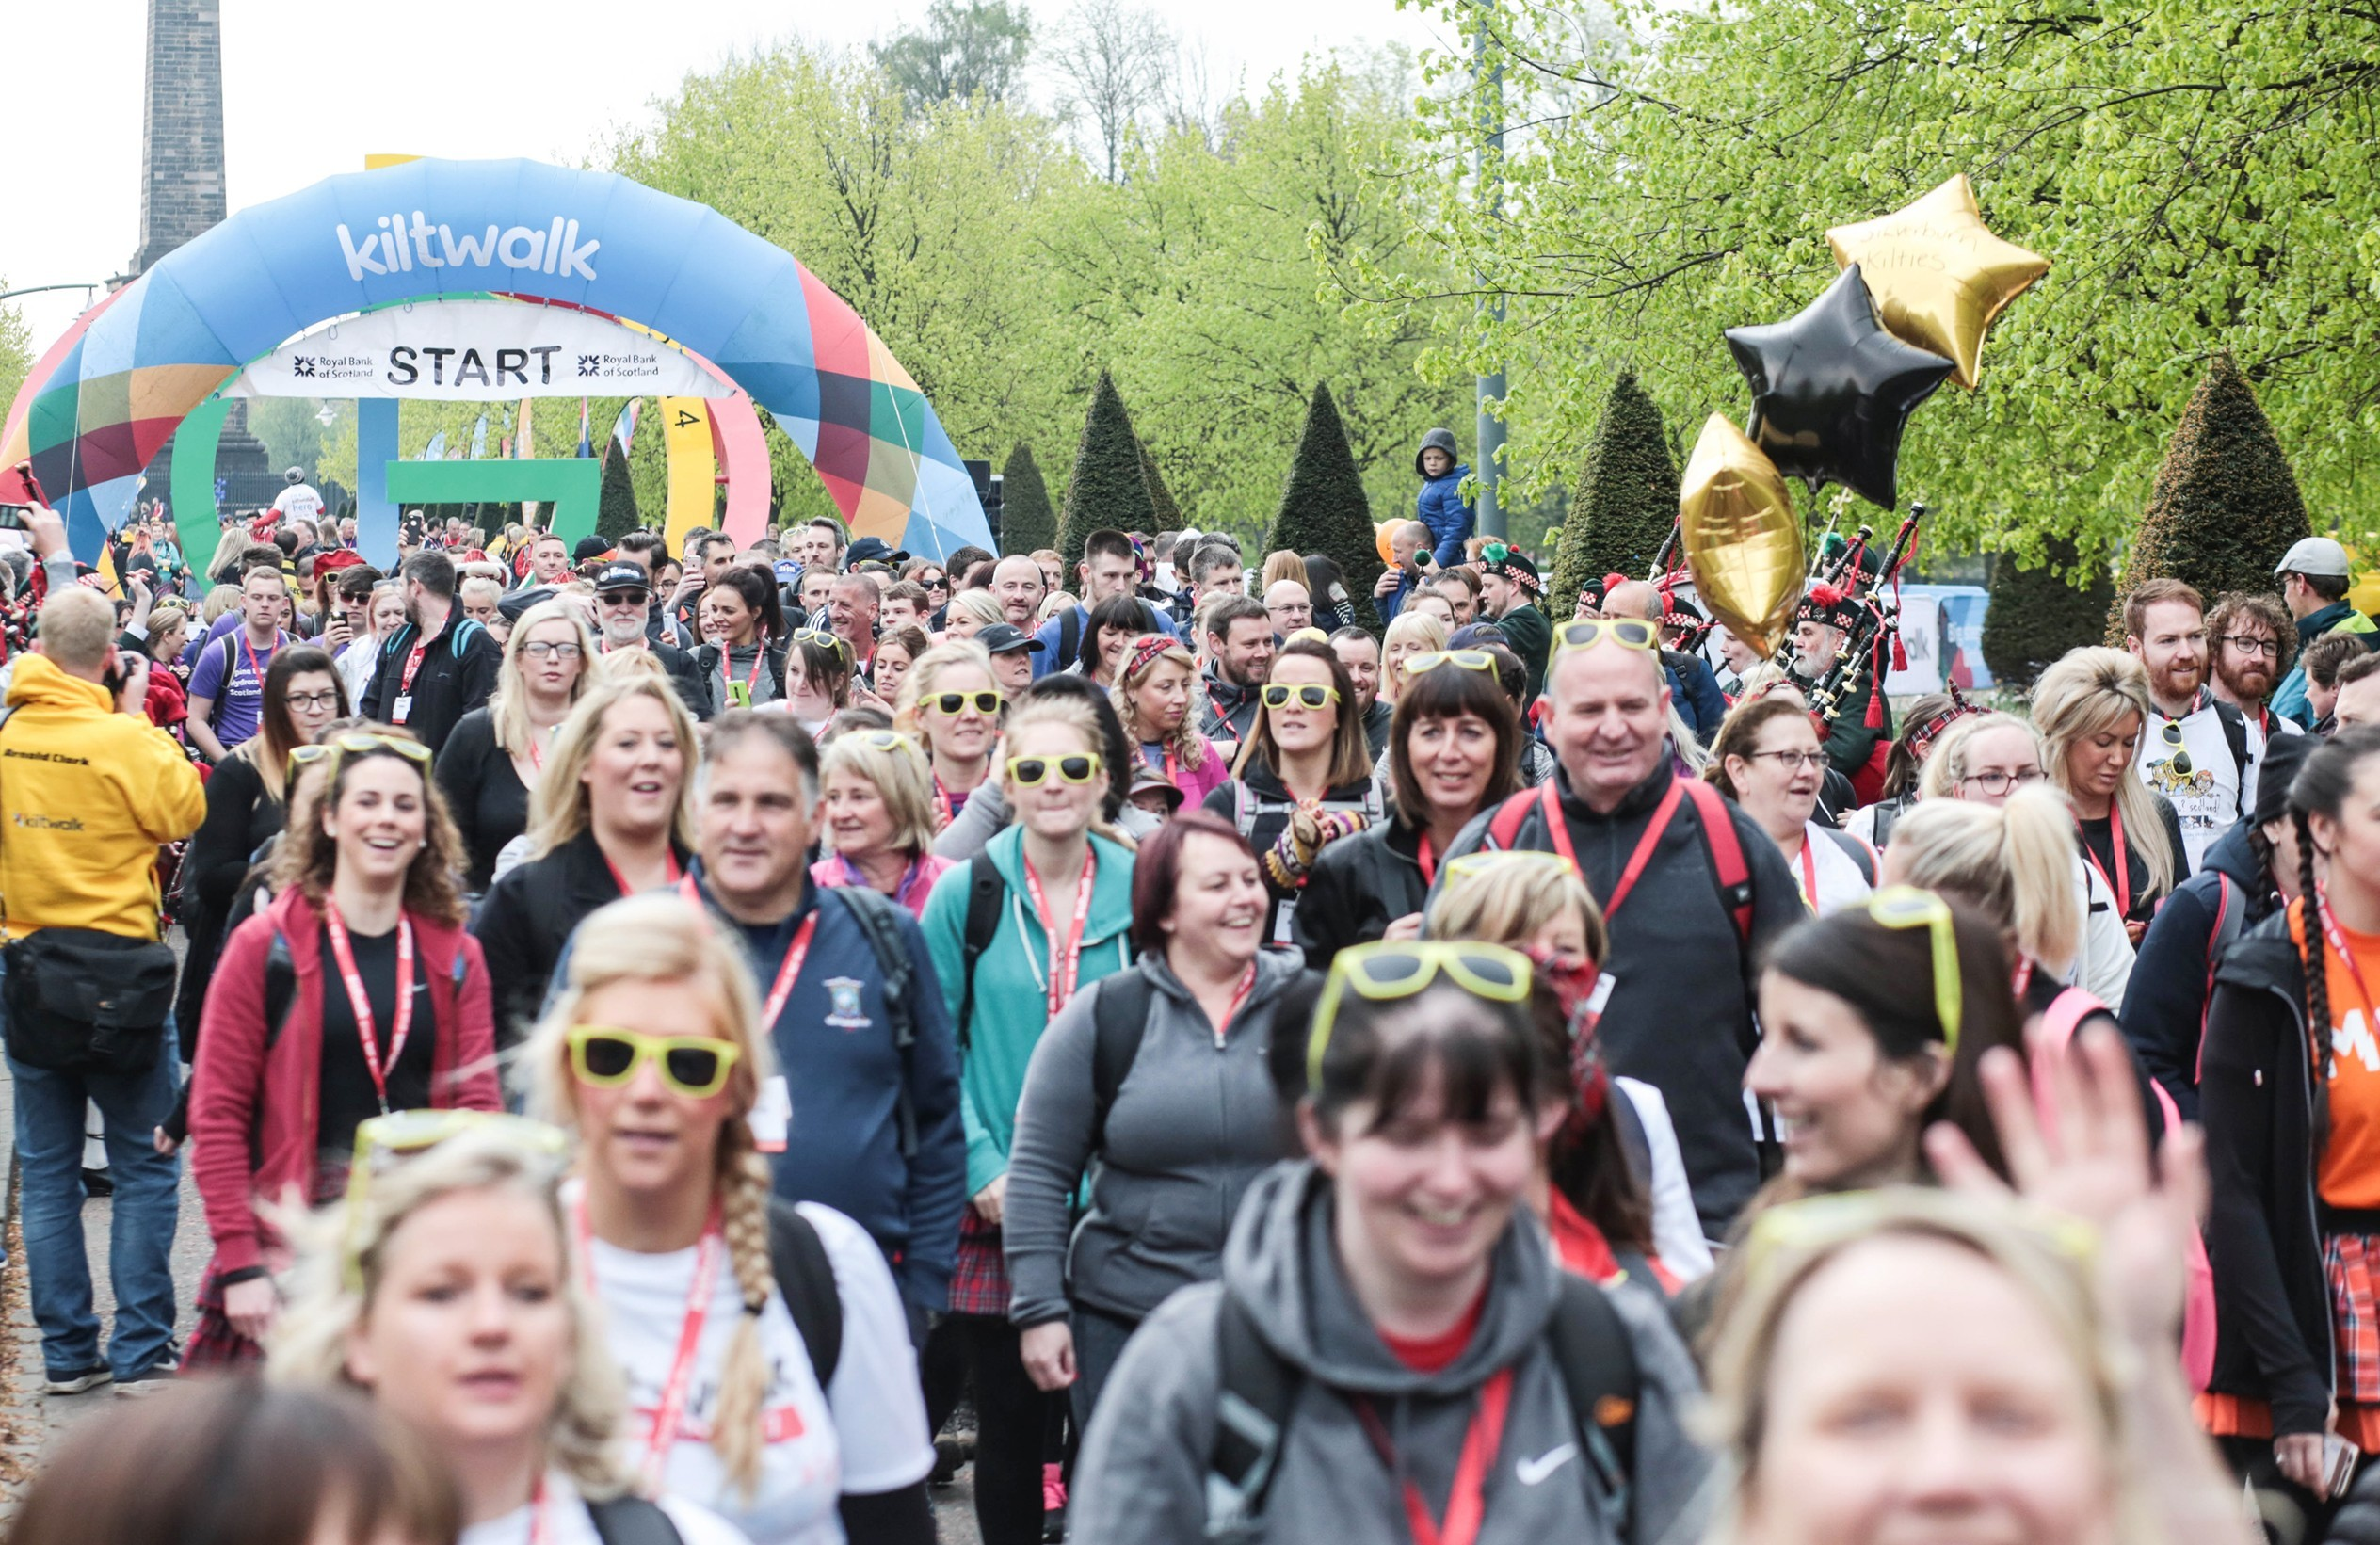 Gerard Butler and Ross King have urged people to take part in Kiltwalk (Kiltwalk/PA)